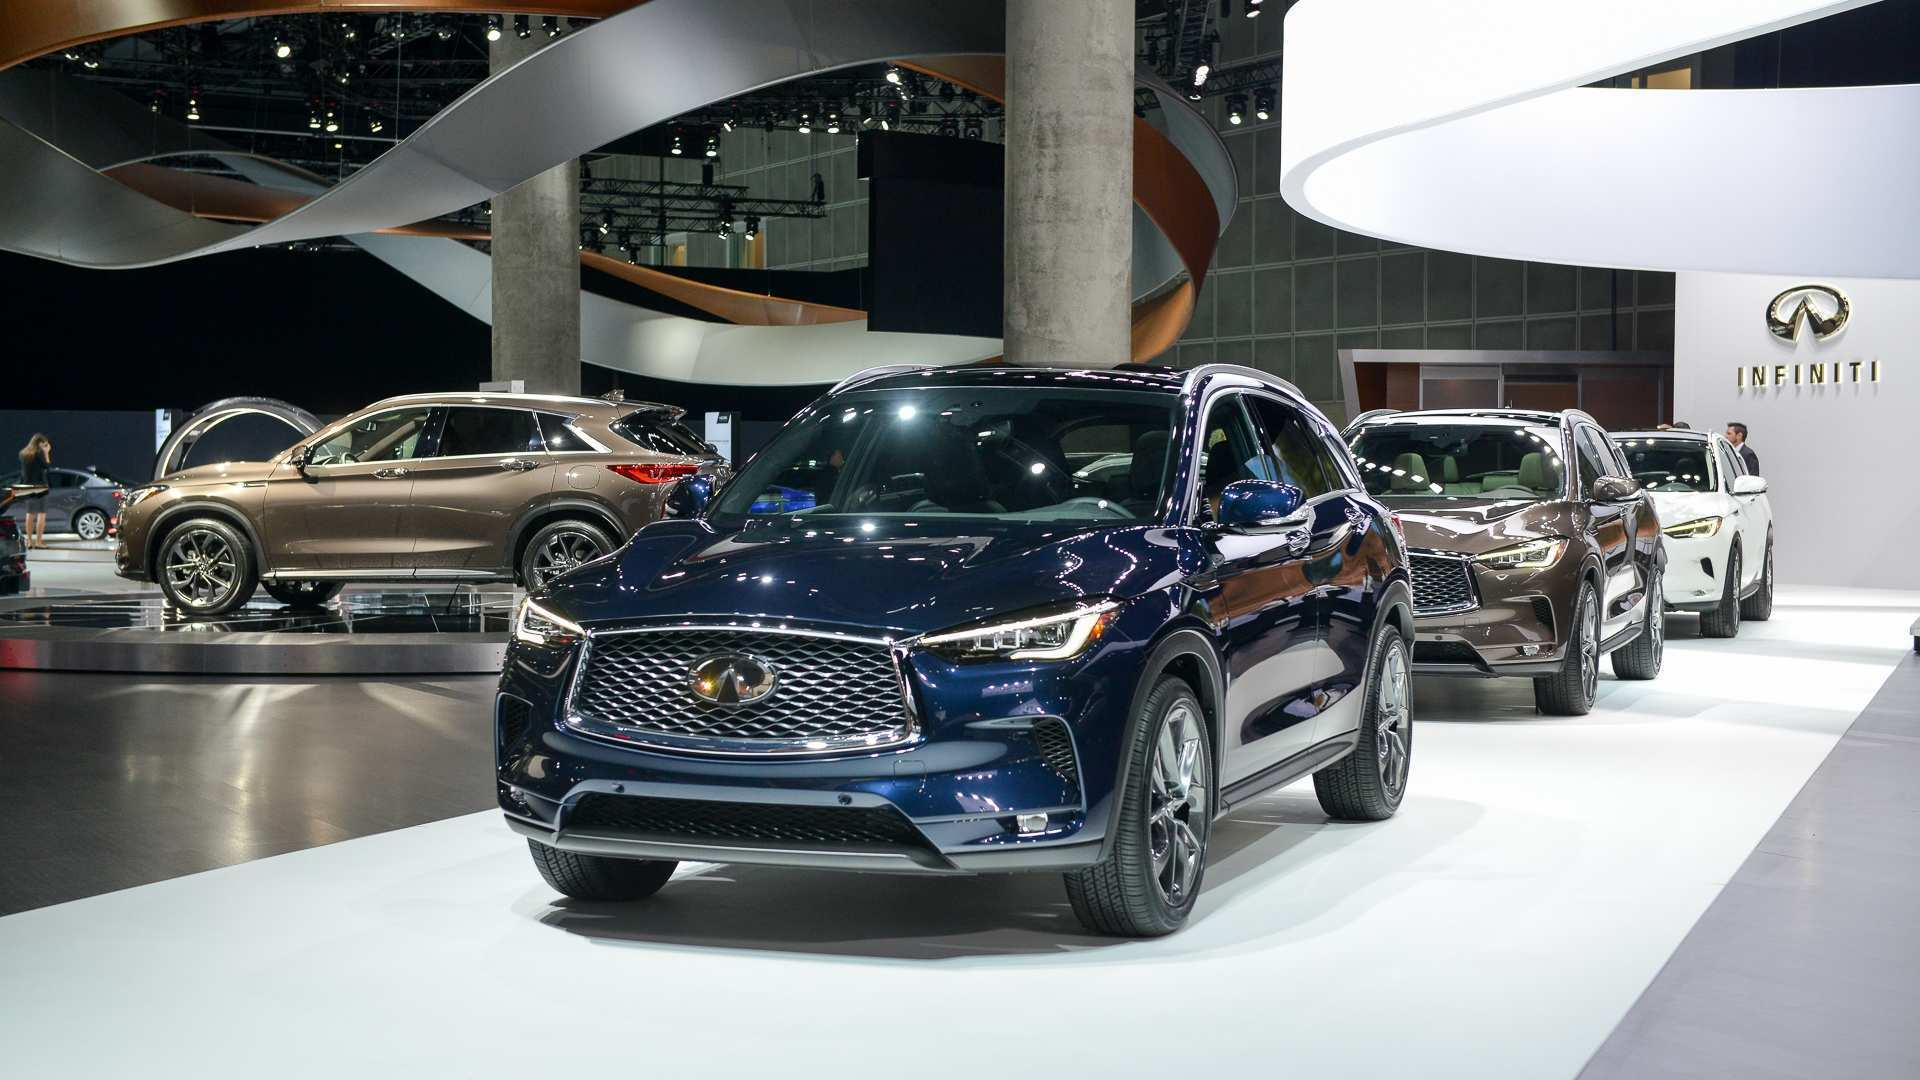 88 The 2020 Infiniti Qx50 Mpg Picture by 2020 Infiniti Qx50 Mpg